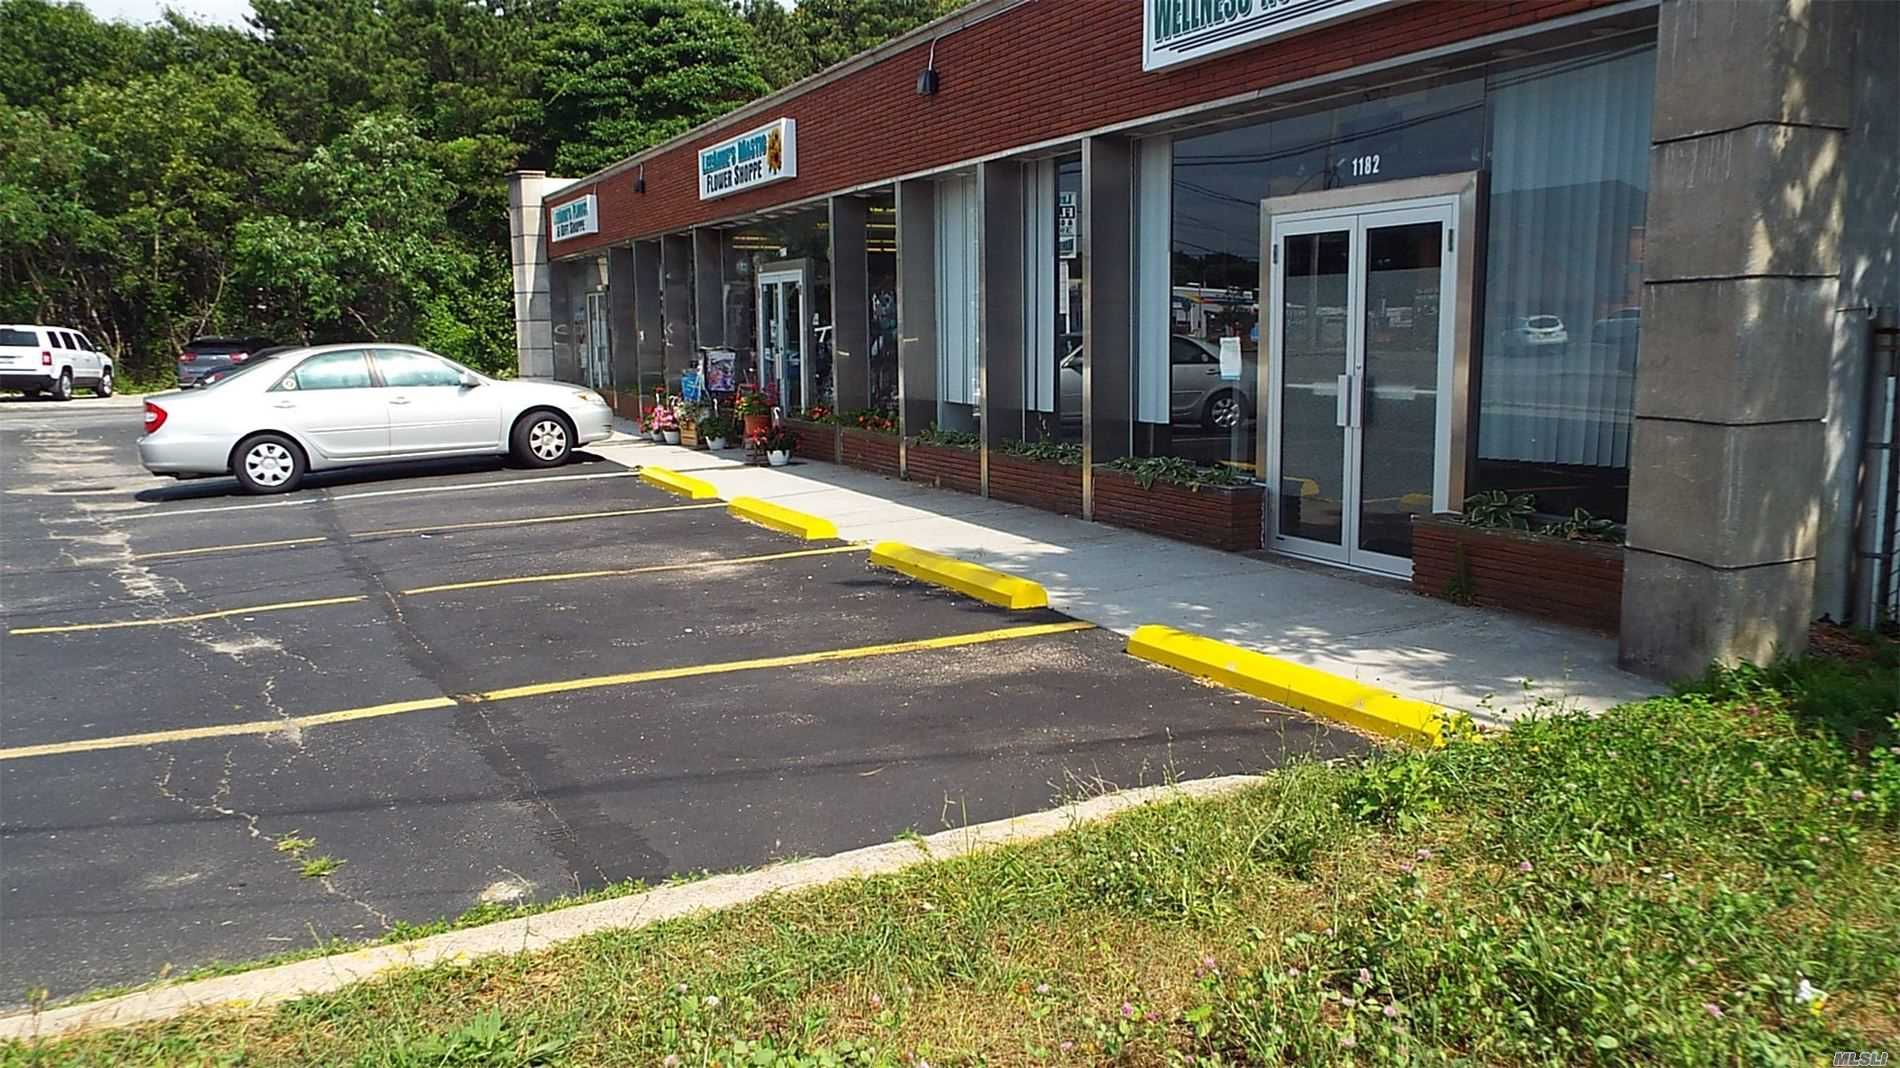 Acquisto commerciale in 1182 Montauk Hwy, Mastic, NY ,11950